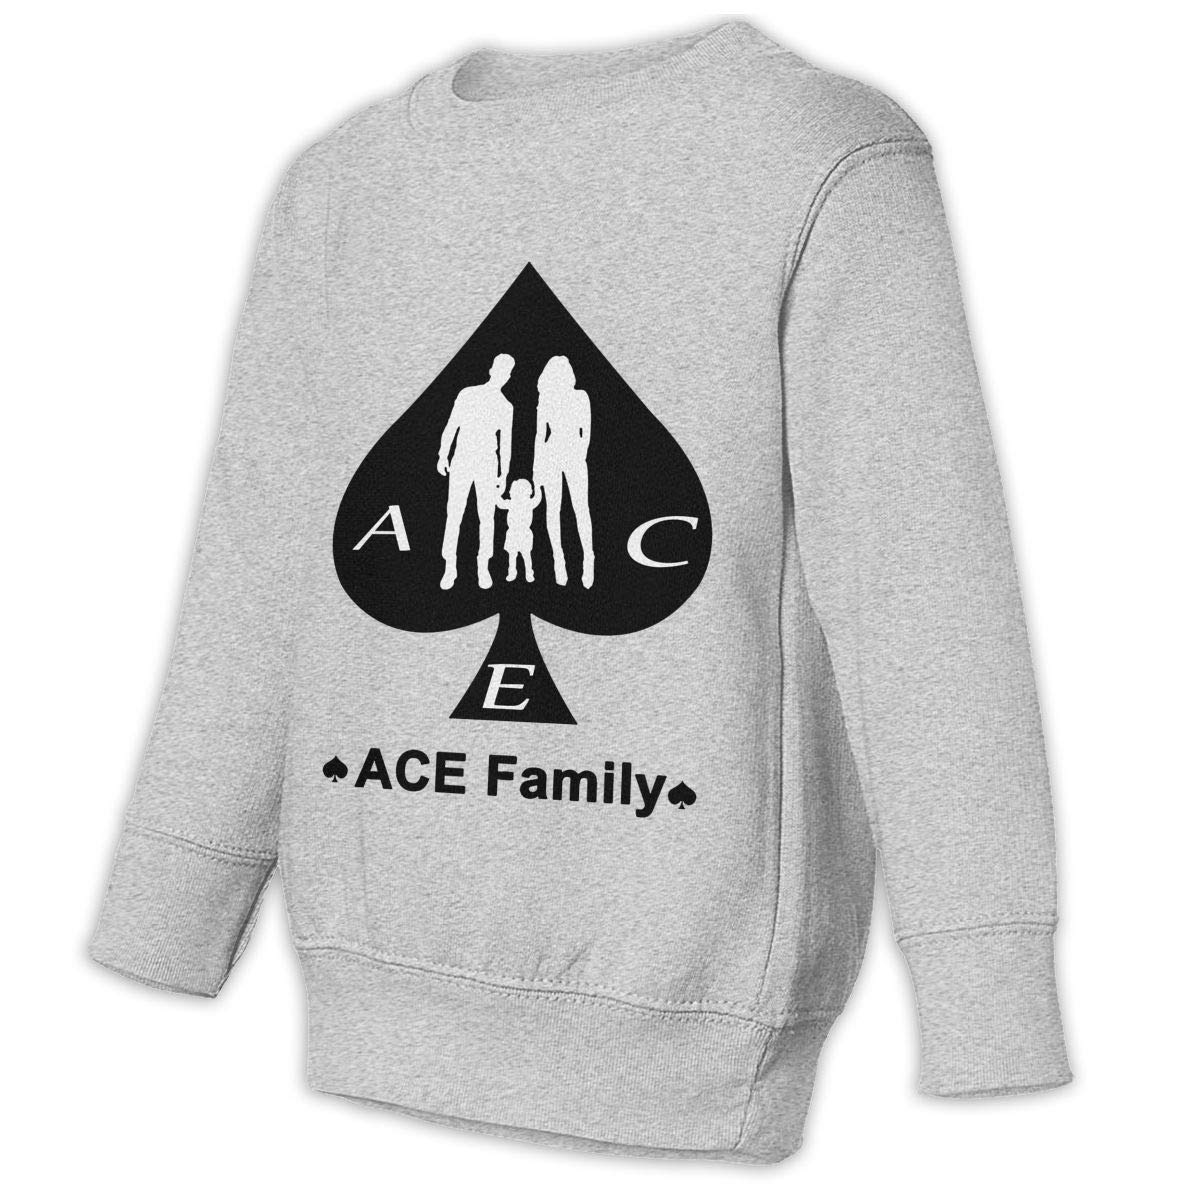 ACE Family Logo Kids Hip Hop Hoodie Classical Sweater Round Collar Hooded Sweatshirts